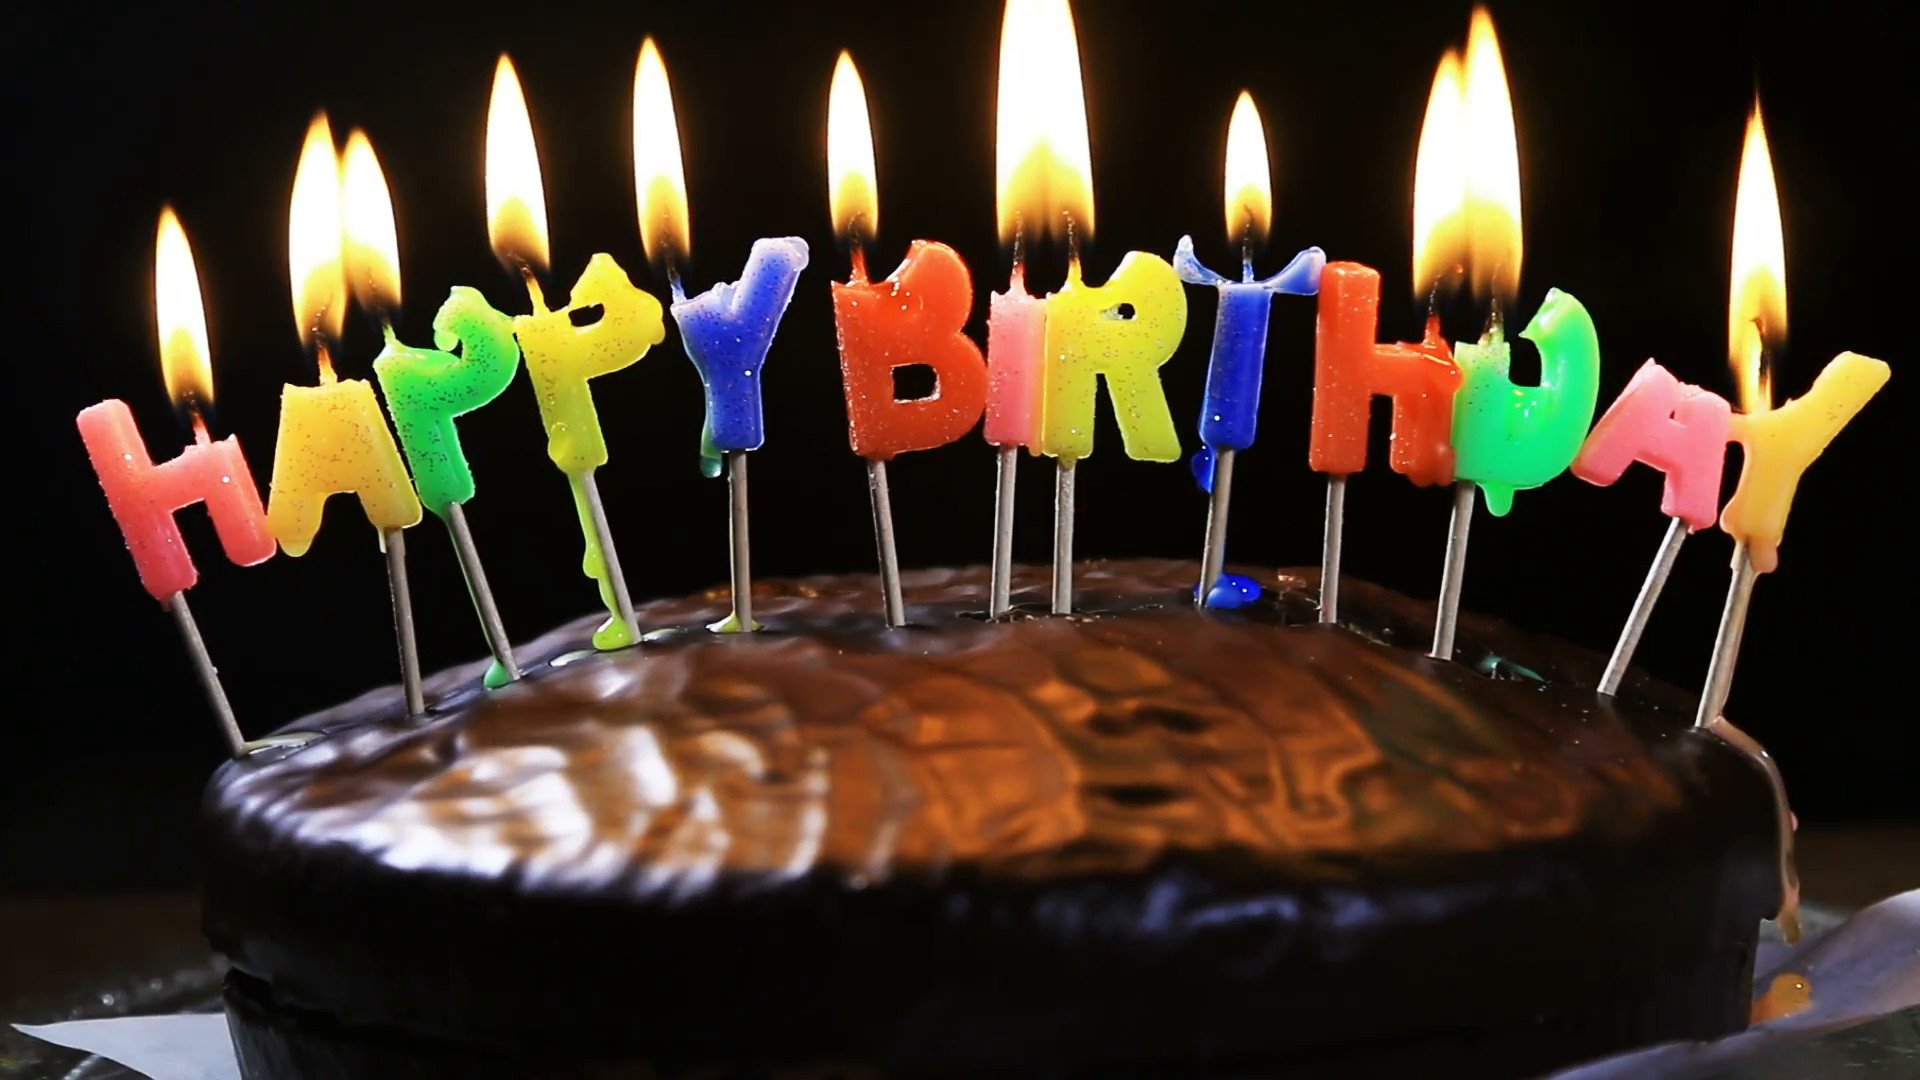 Best ideas about Happy Birthday Cake With Candles . Save or Pin lighted candles on a happy birthday cake candles with the Now.